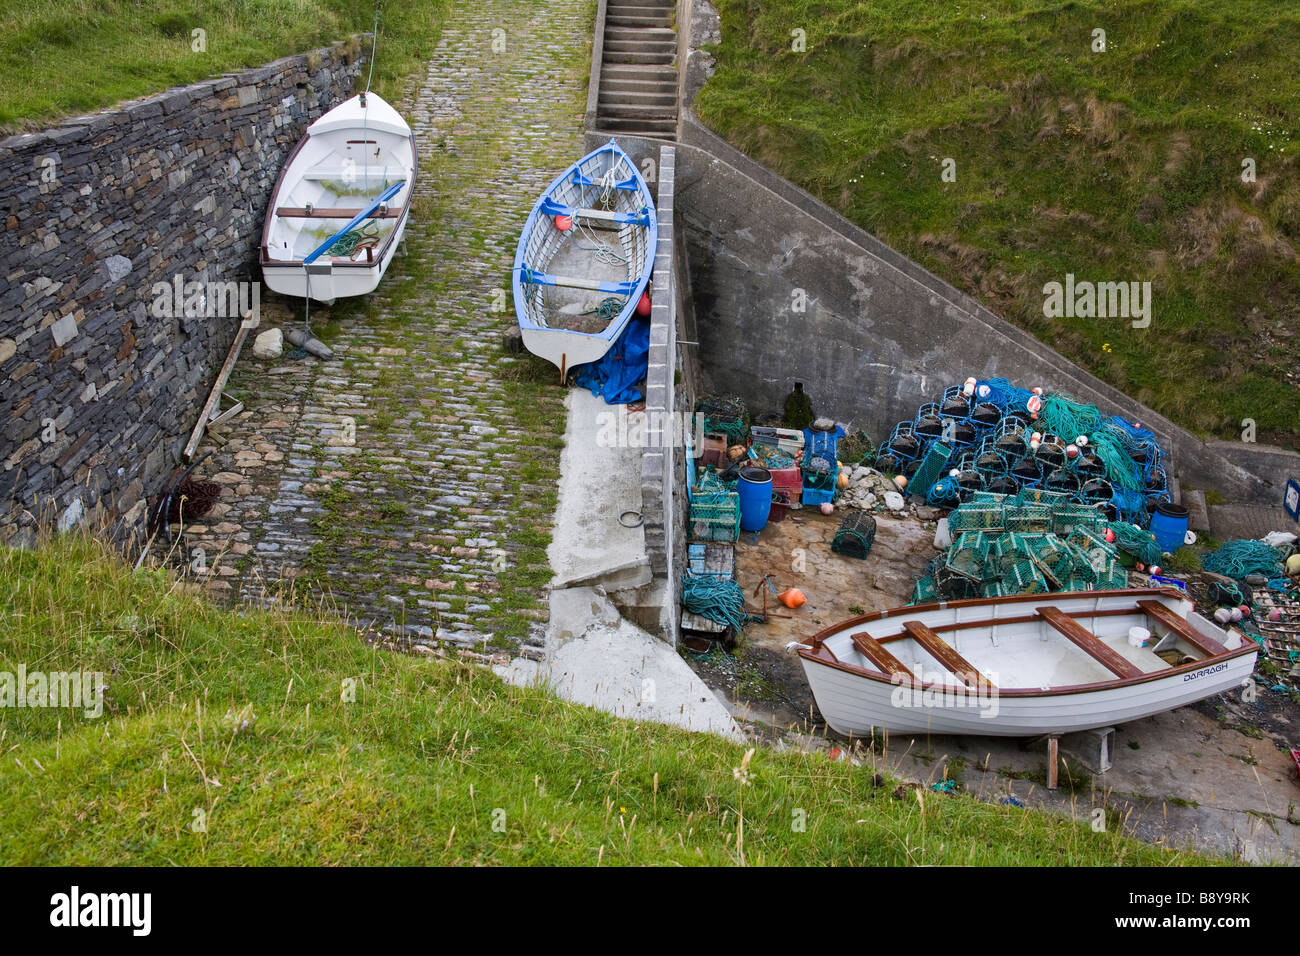 Garbage cans with fishing boats on a pier, Malin Beg, County Donegal, Ulster Province, Ireland - Stock Image